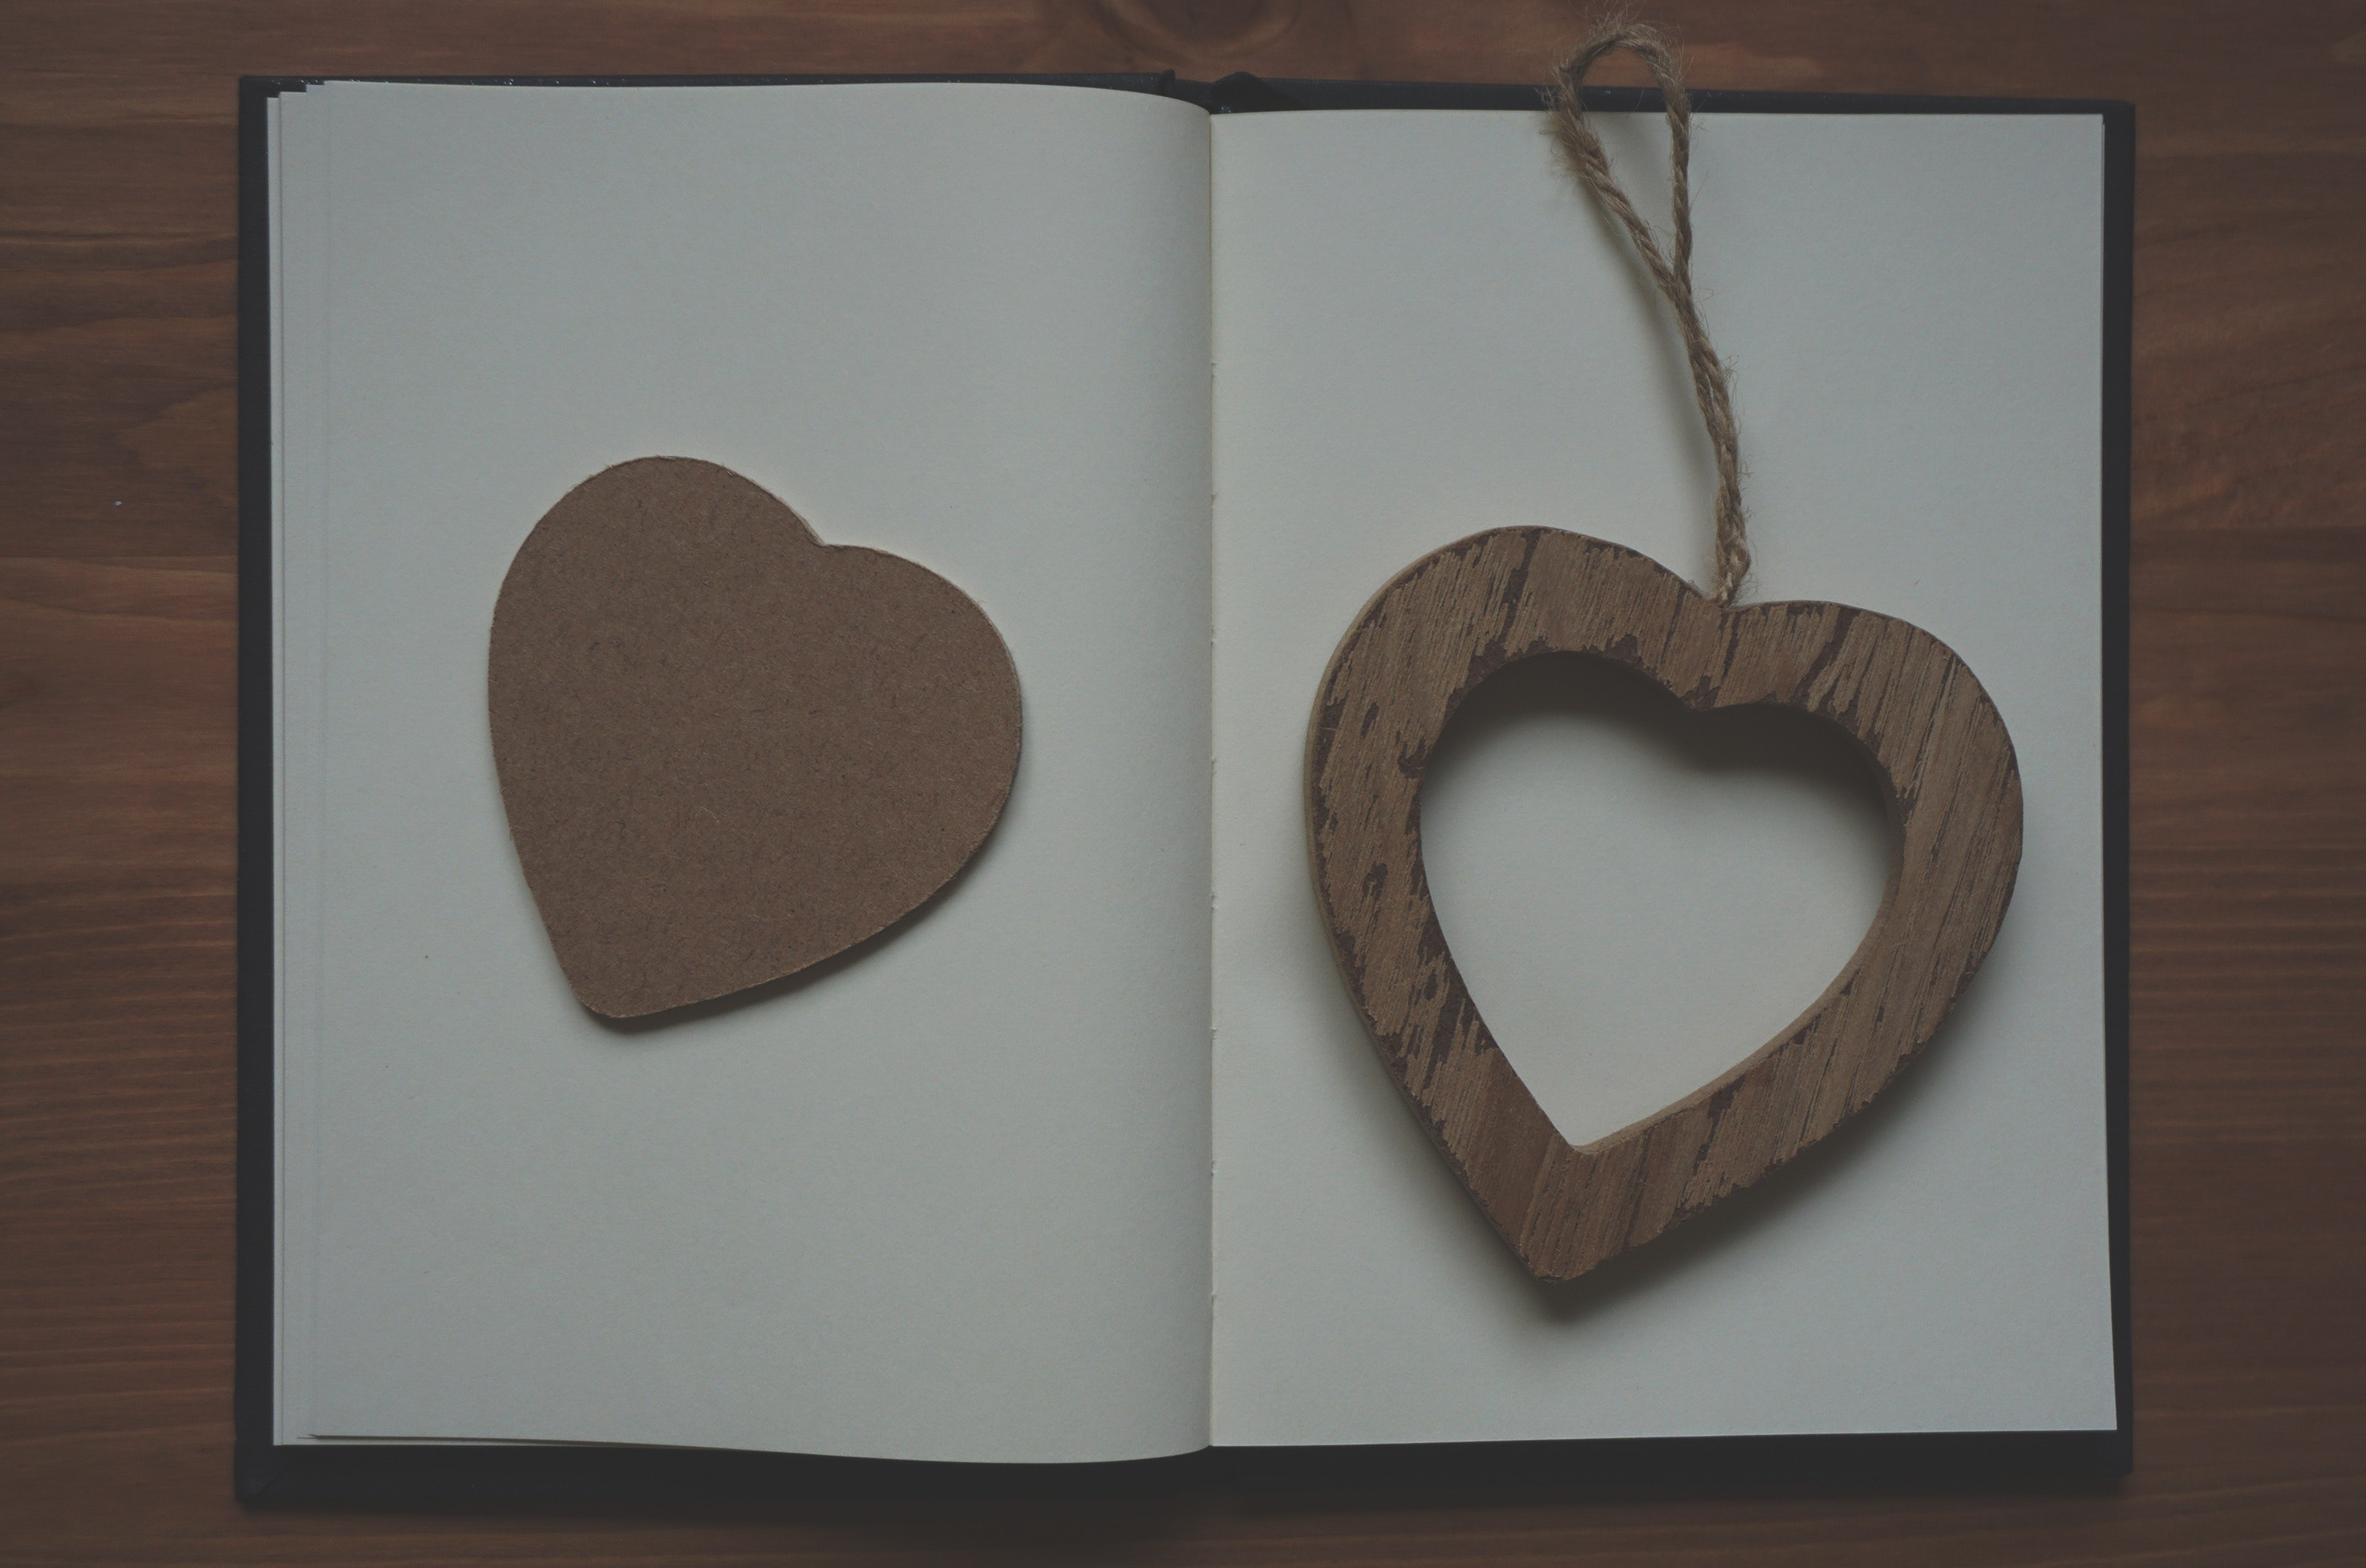 Brown Wooden Heart Shape Pendant on White Book, Blank, Heart, Label, Note, HQ Photo